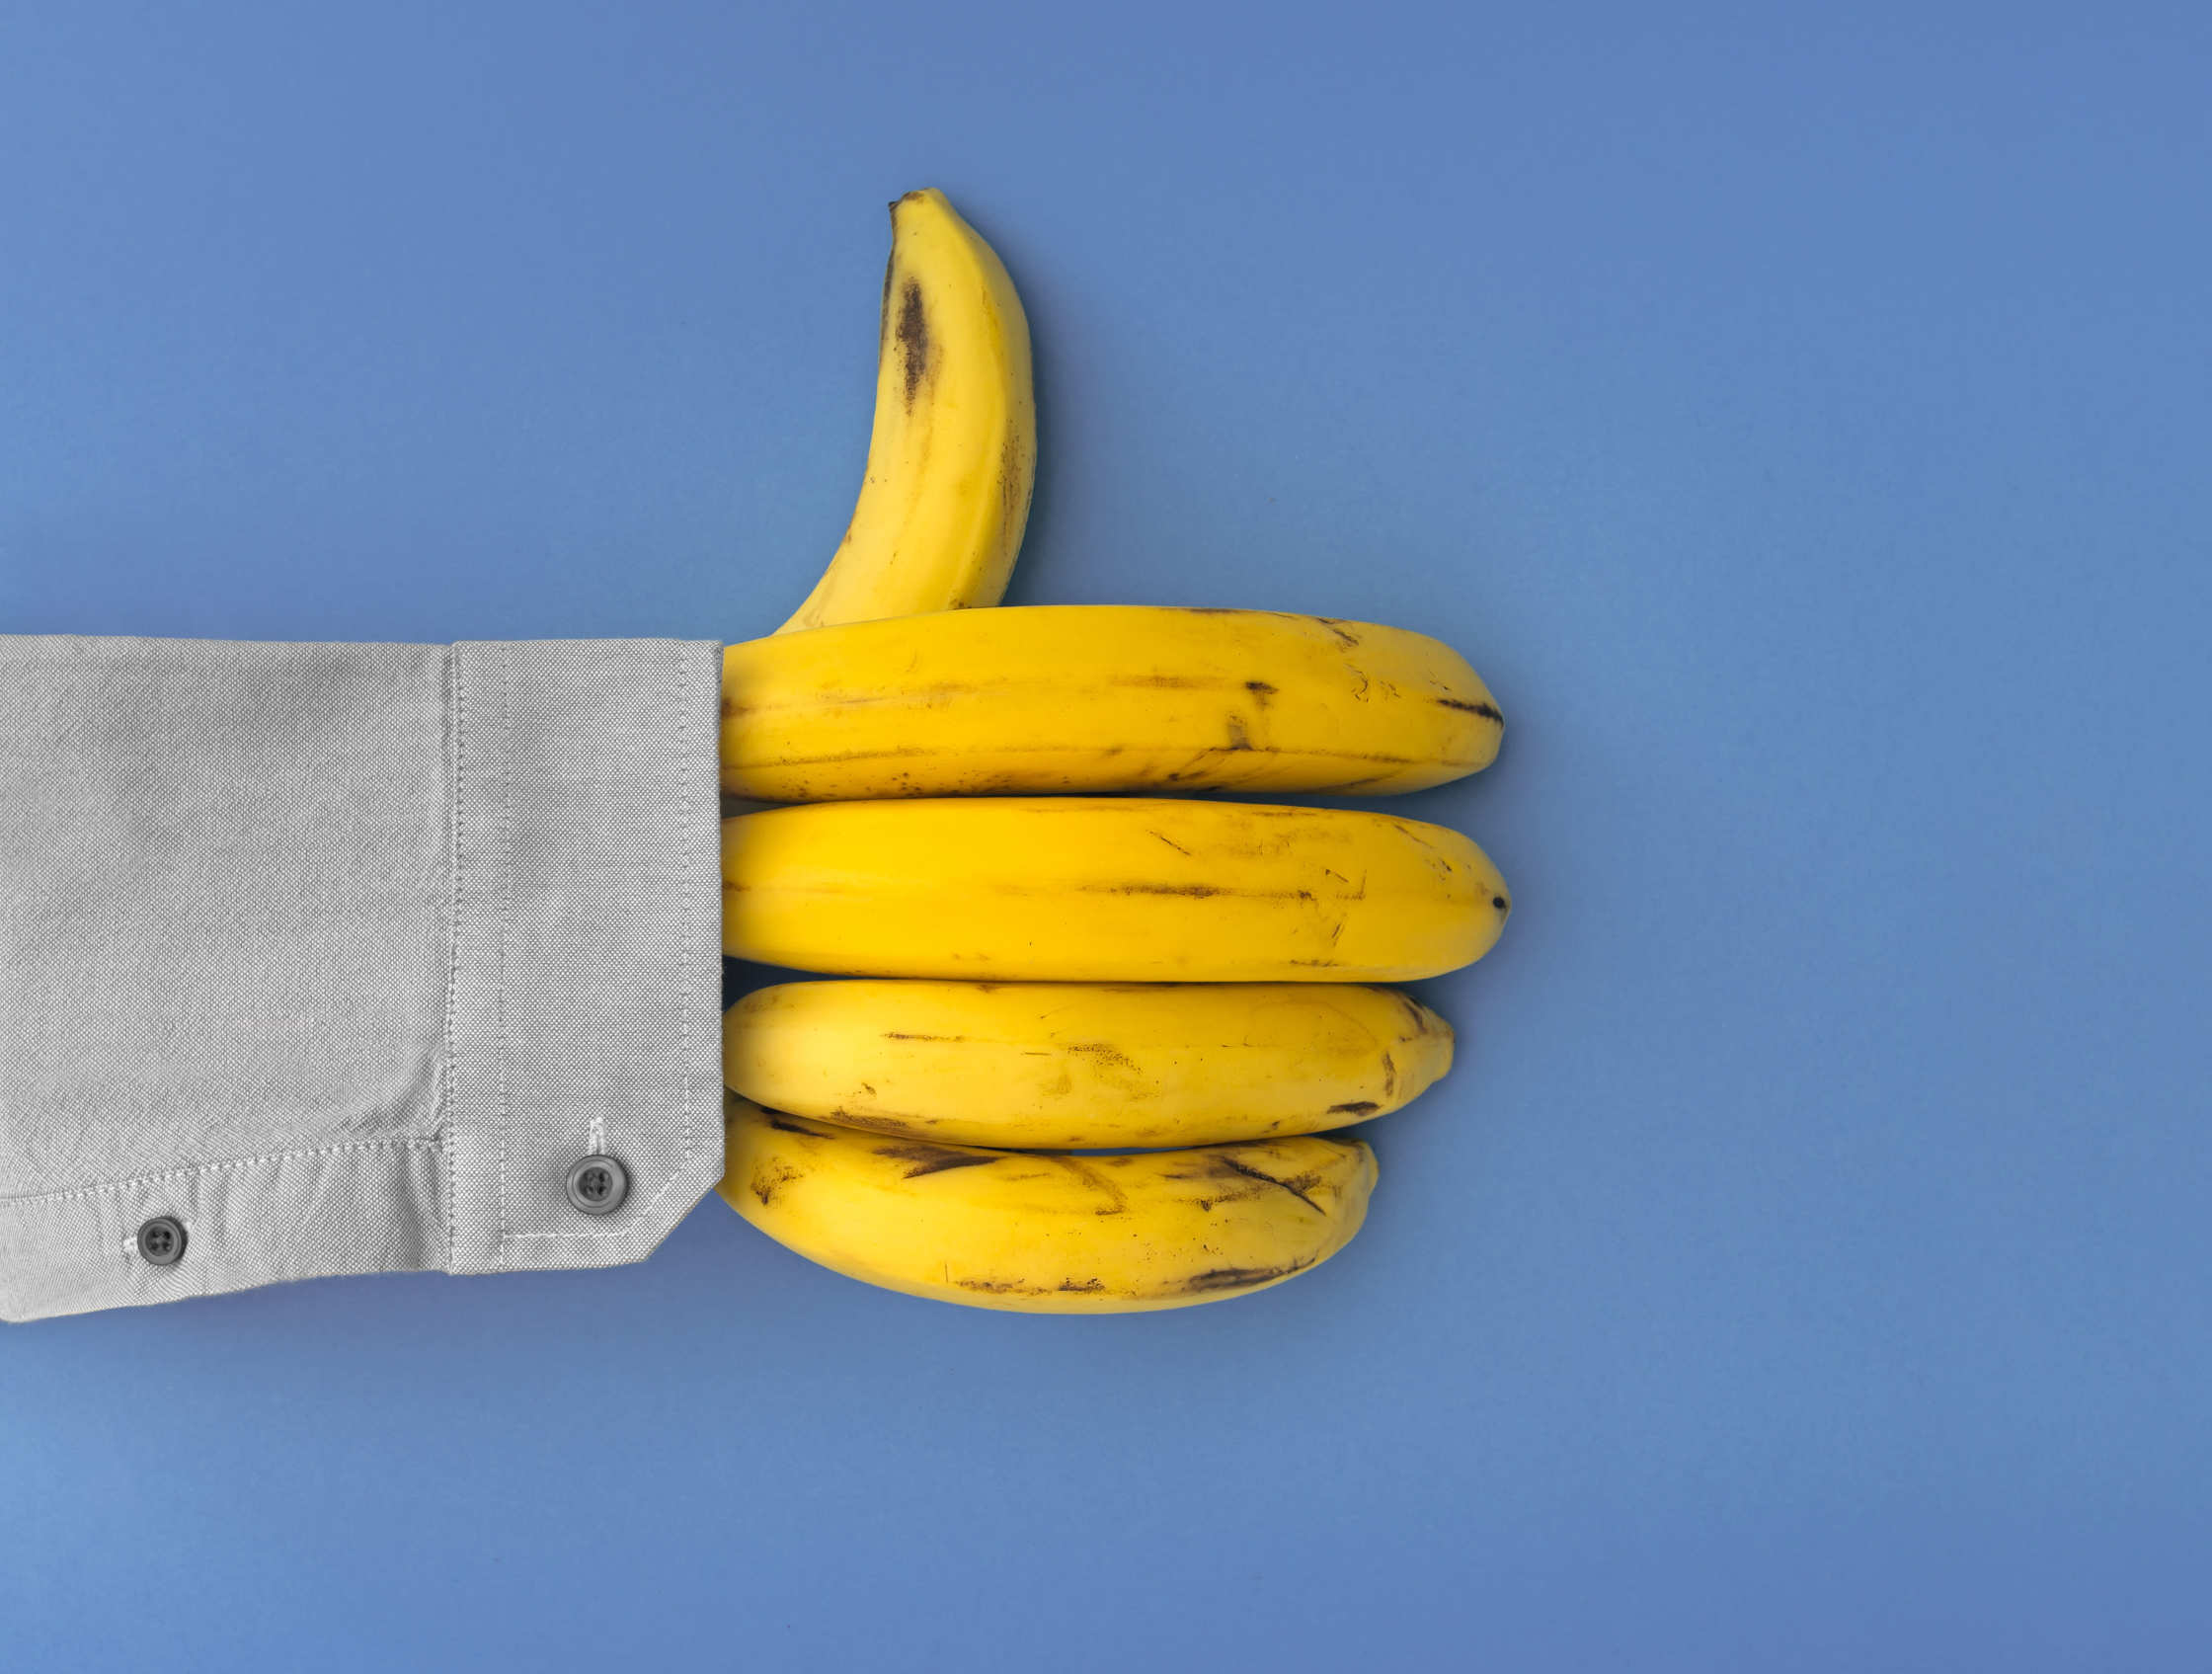 Banana_Like_Domenic_Bahmann.jpg